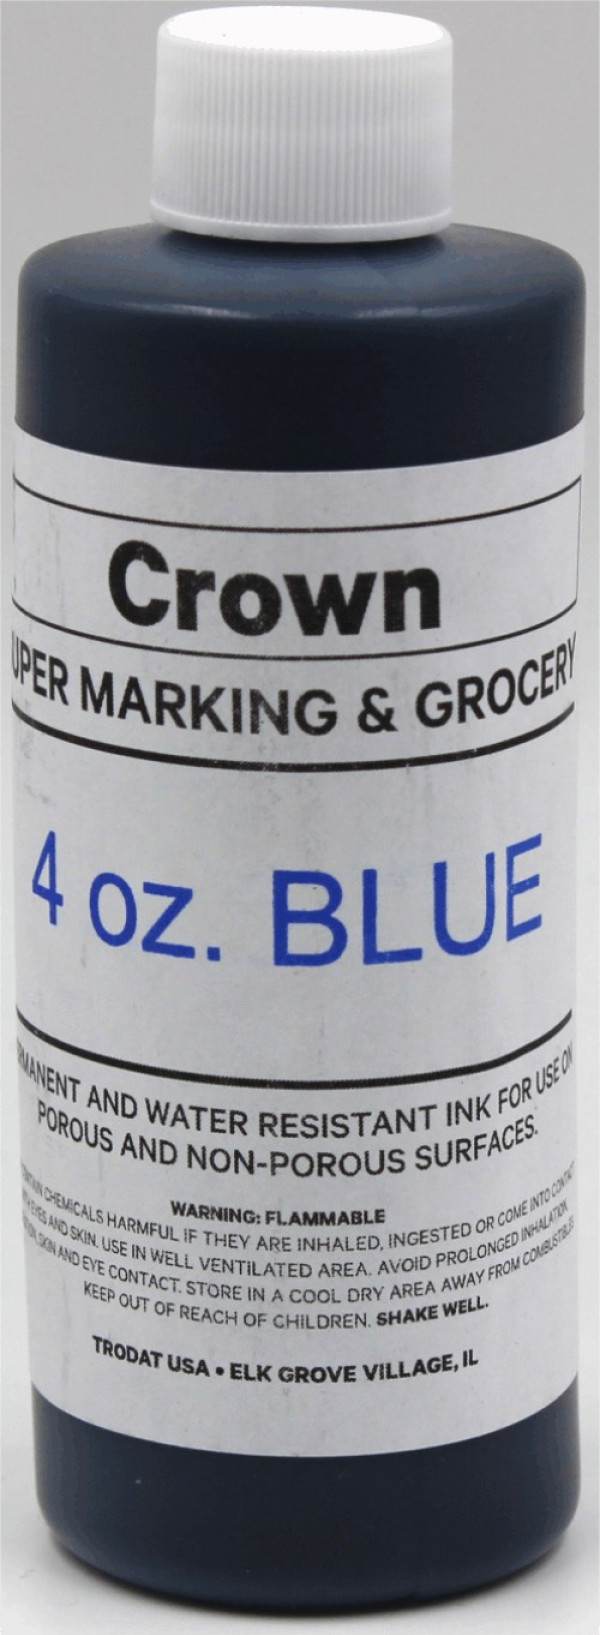 Blue 4oz SuperMarking Ink